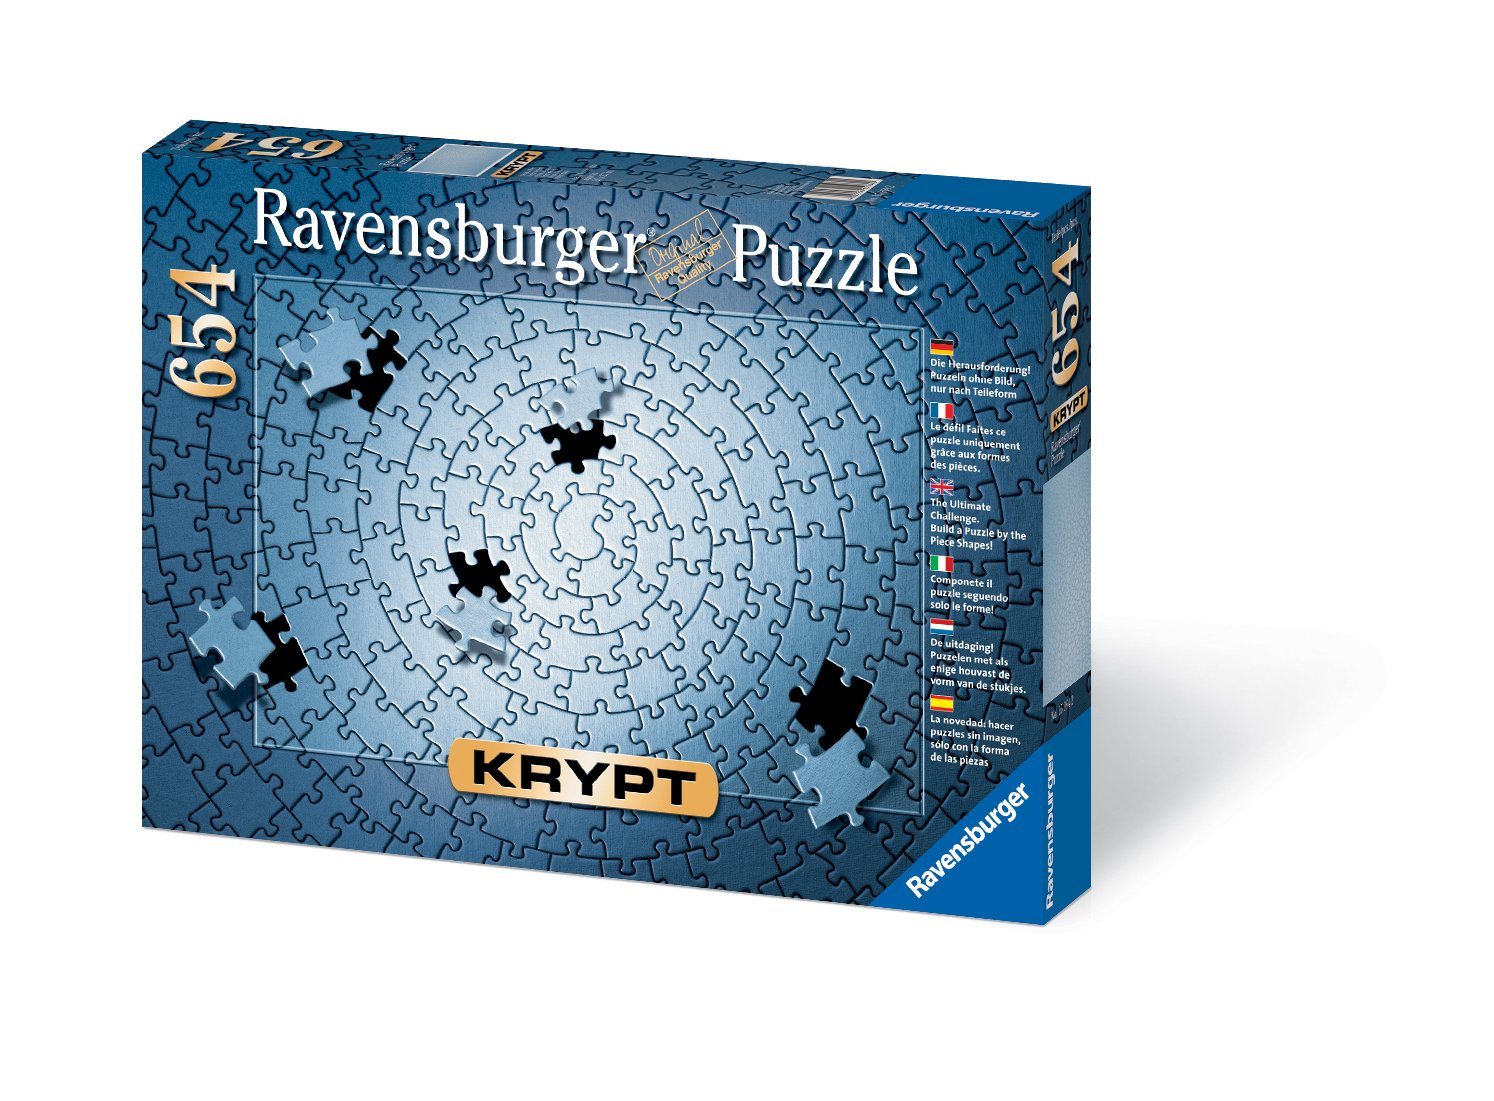 Ravensburger Krypt Silver 654 Piece Blank Jigsaw Puzzle Challenge for Adults – Every Piece is Unique, Softclick Technology Means Pieces Fit Together Perfectly